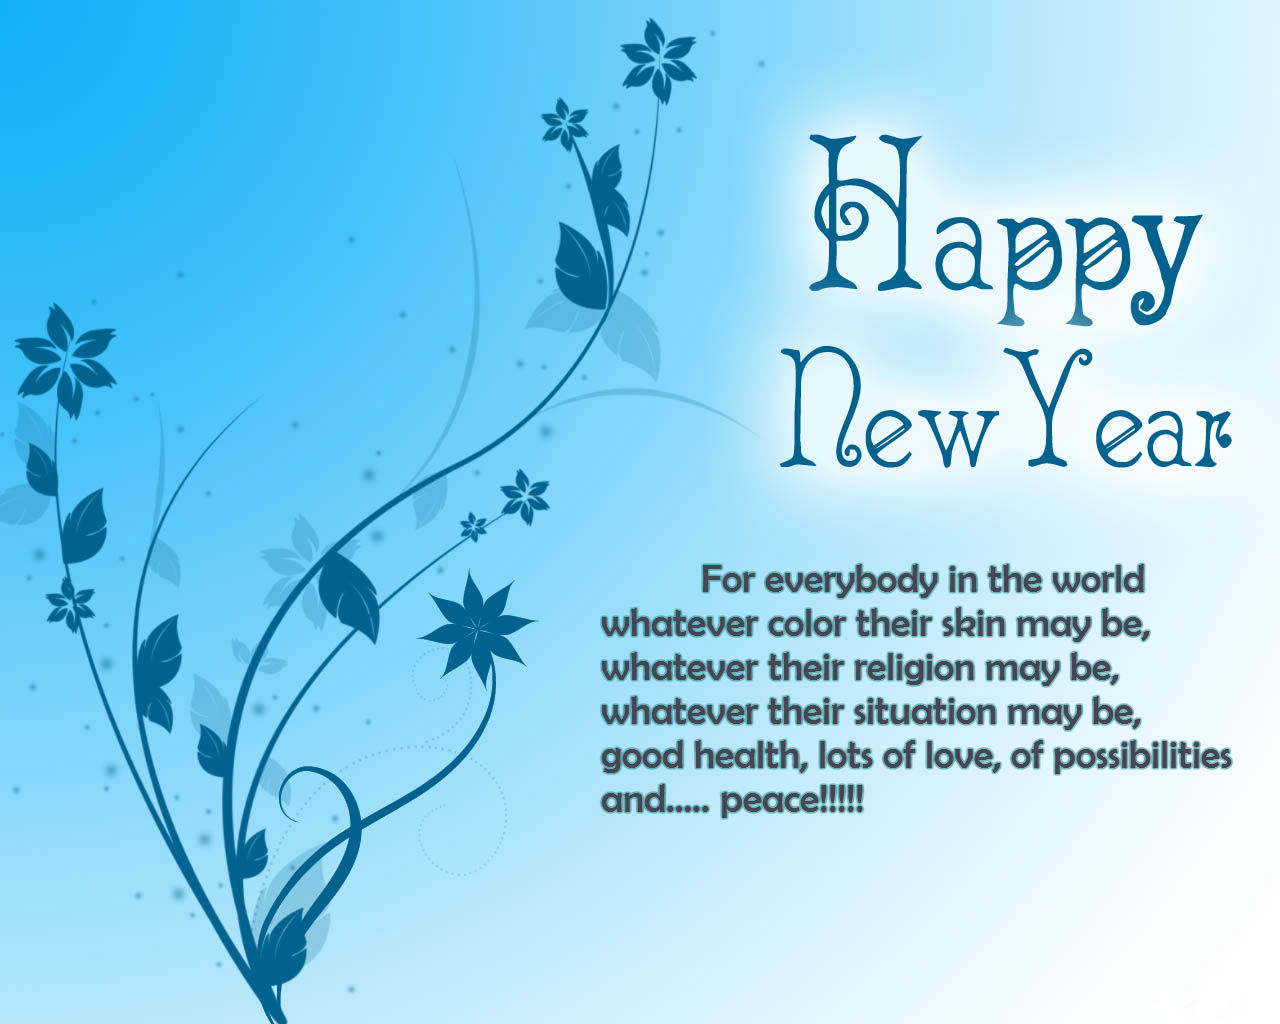 2013 New Year Wishes Wallpapers And Sms. 1280 x 1024.Happy Iranian New Year In Farsi